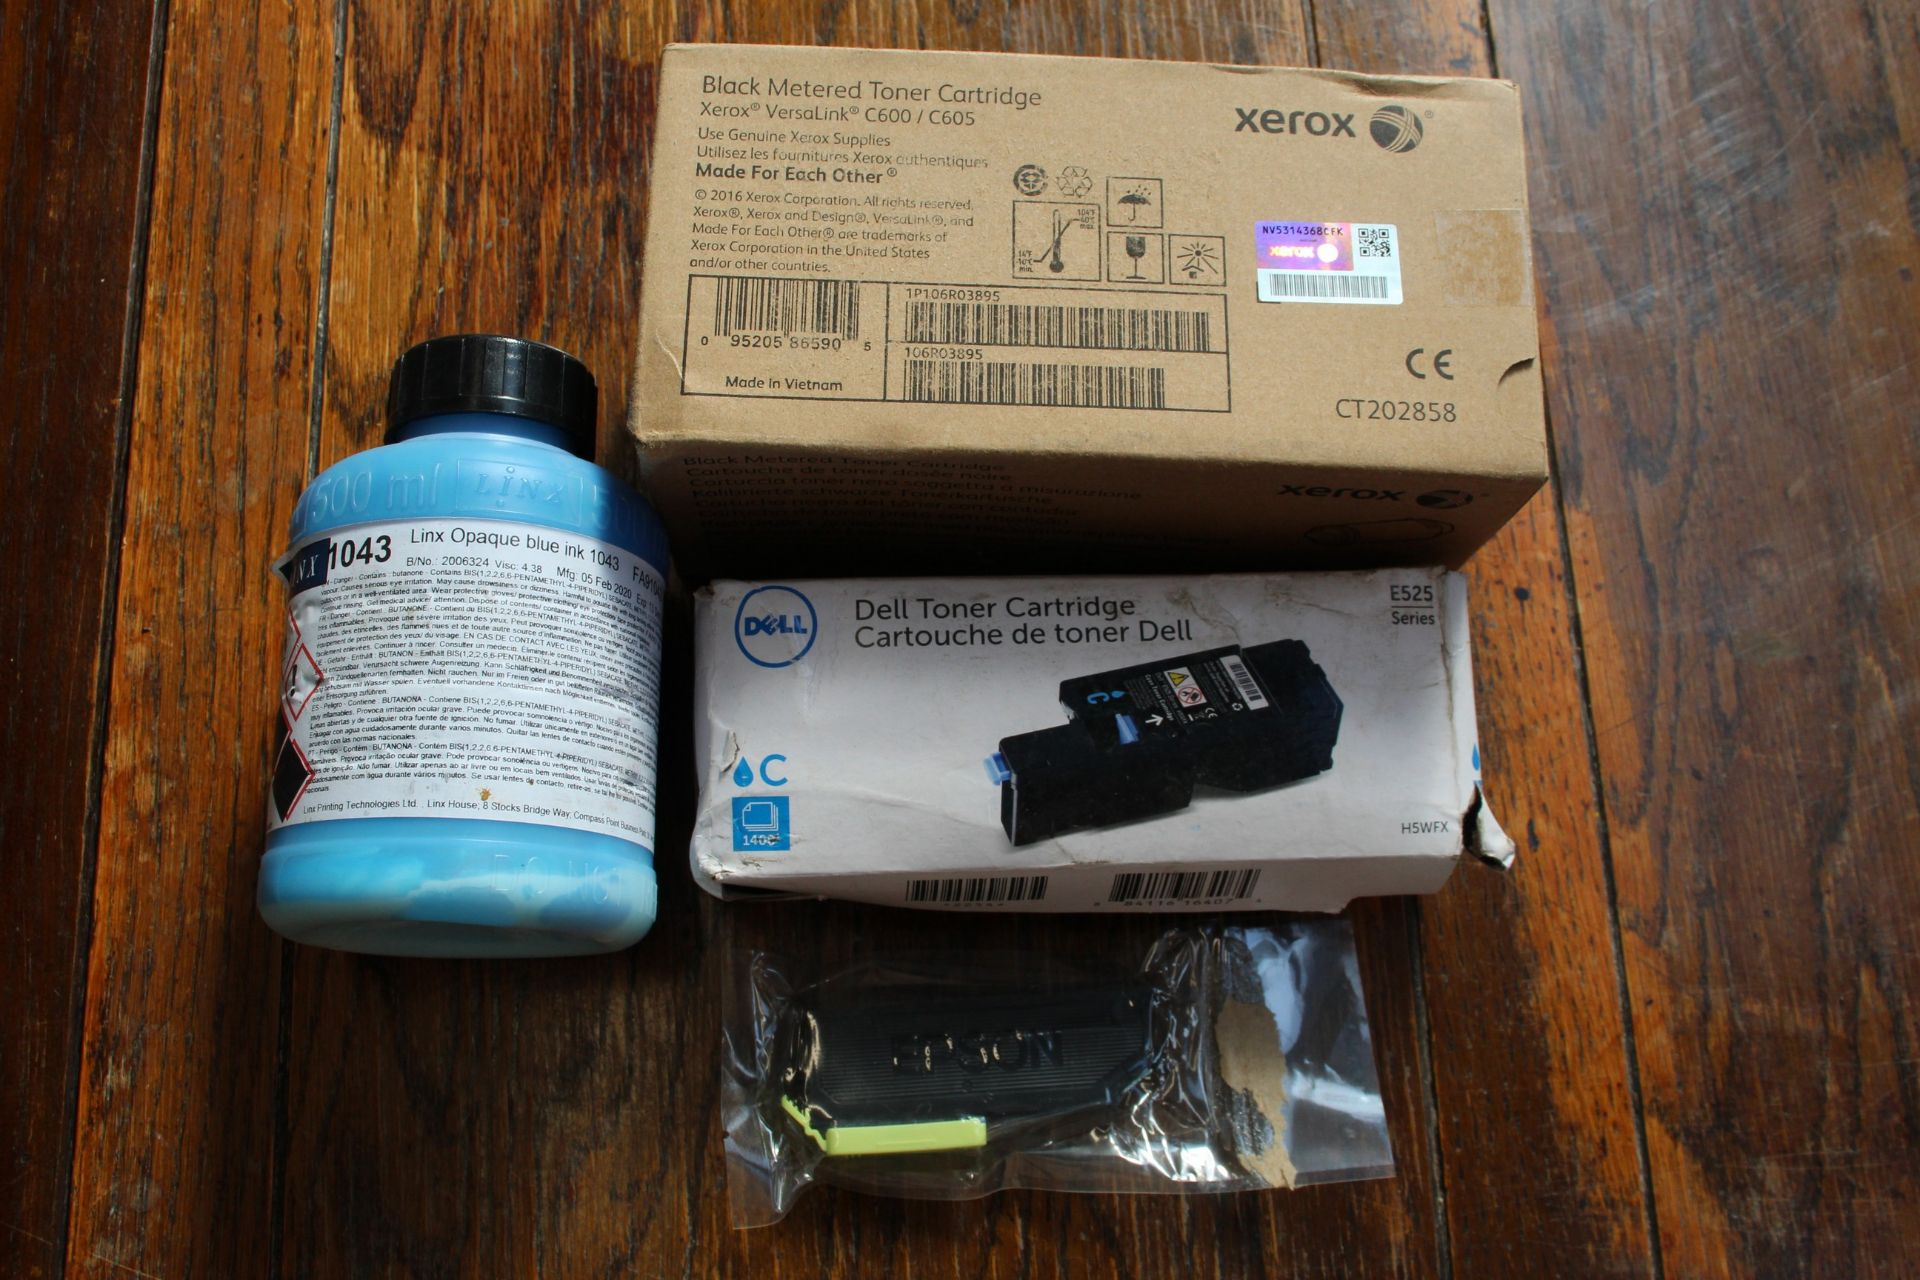 COLLECTION ONLY: A quantity of assorted printer parts and cartridges. - Image 4 of 7